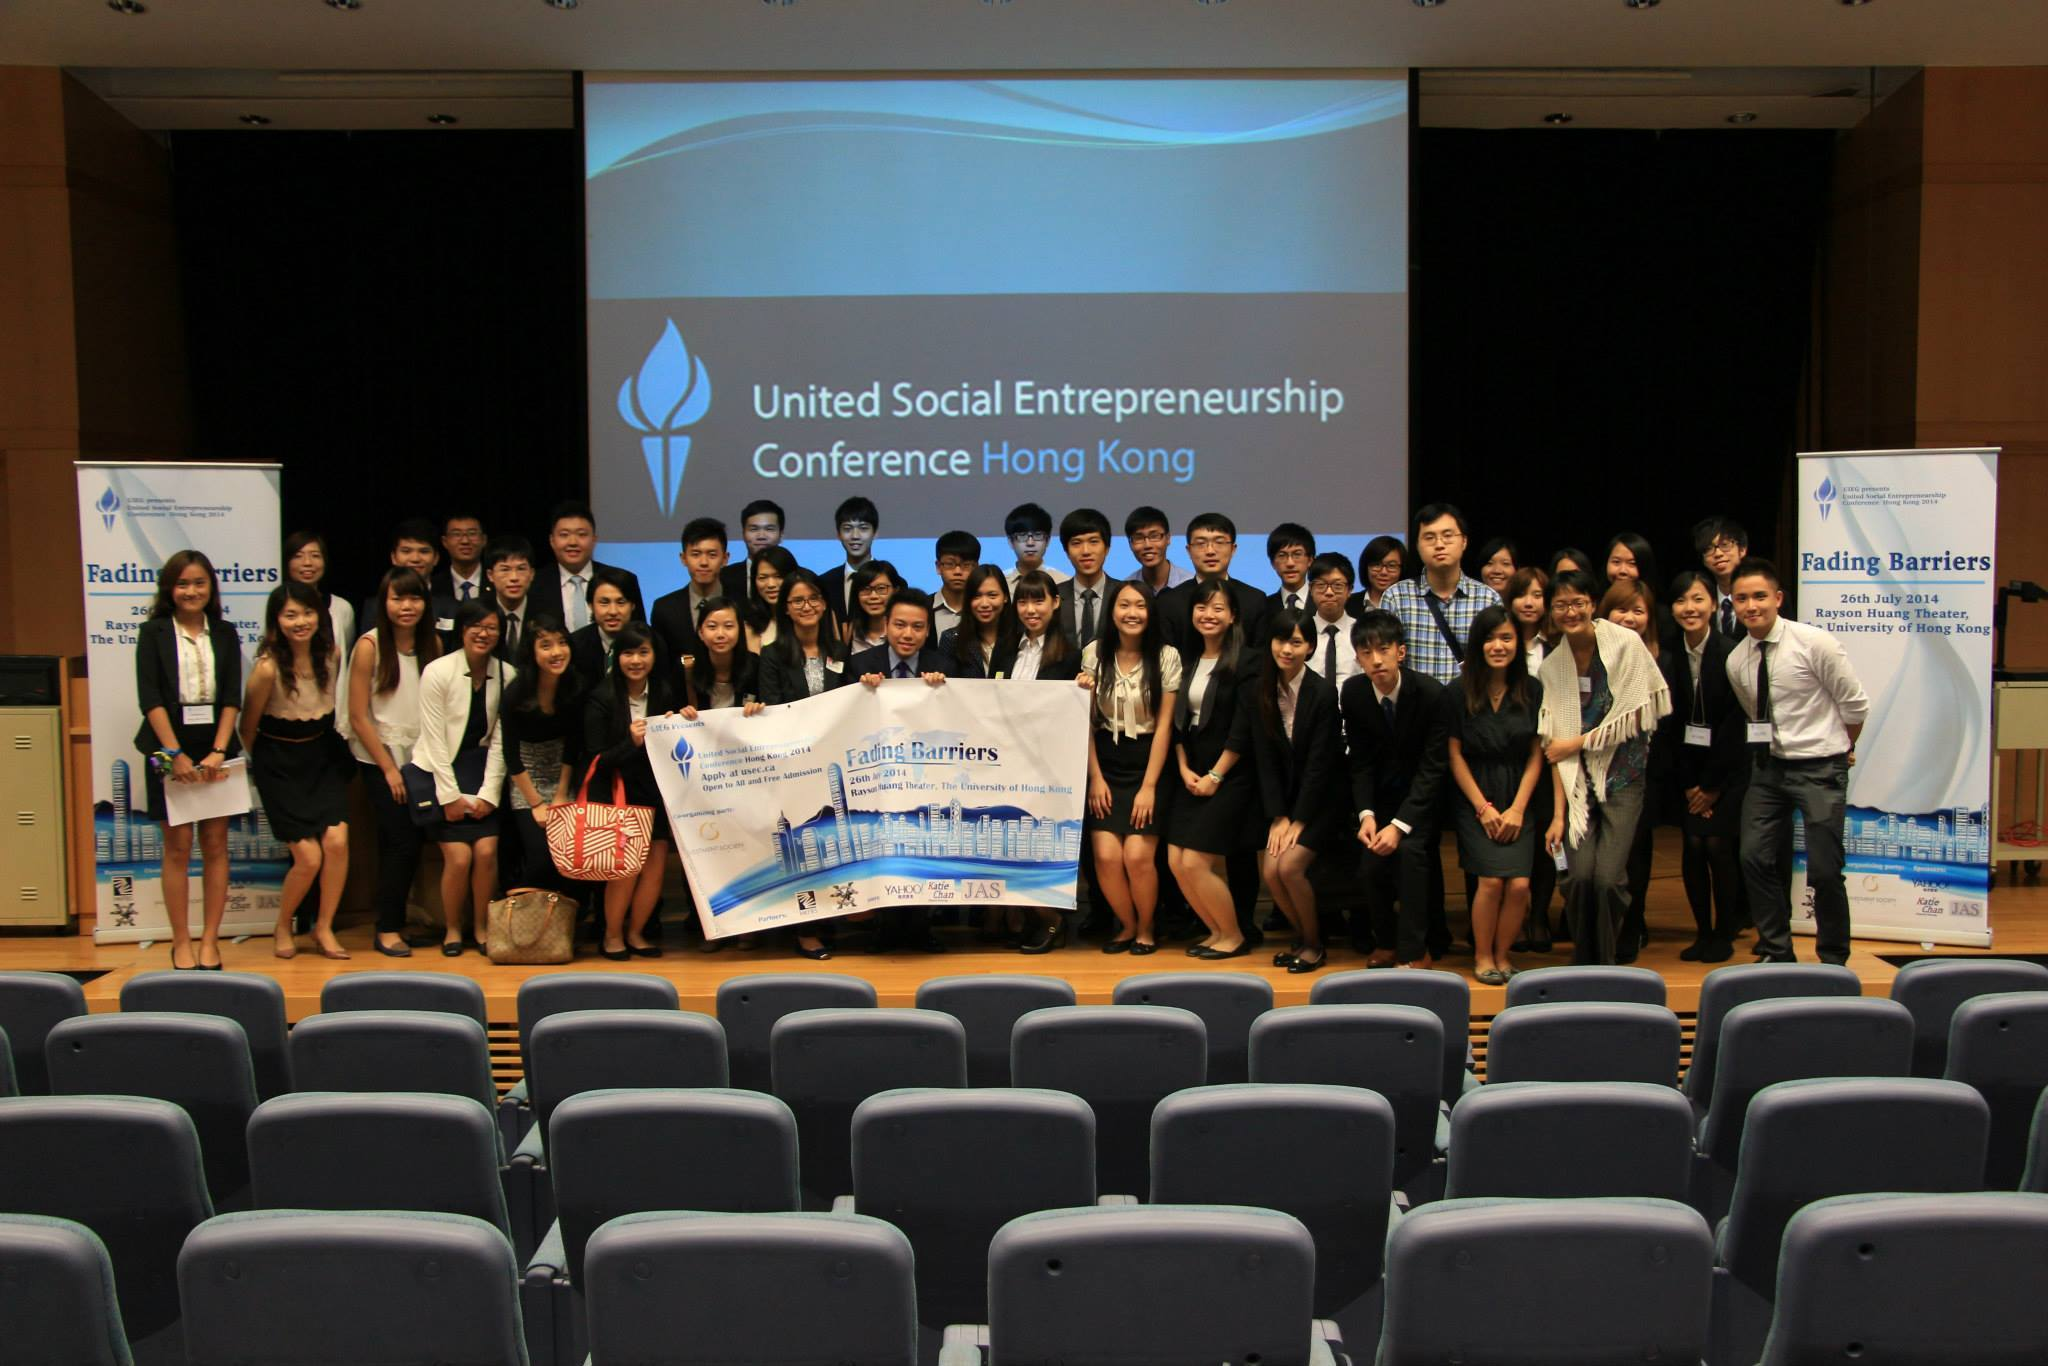 Apply to attend the United Social Entrepreneurship Conference – Hong Kong 2015